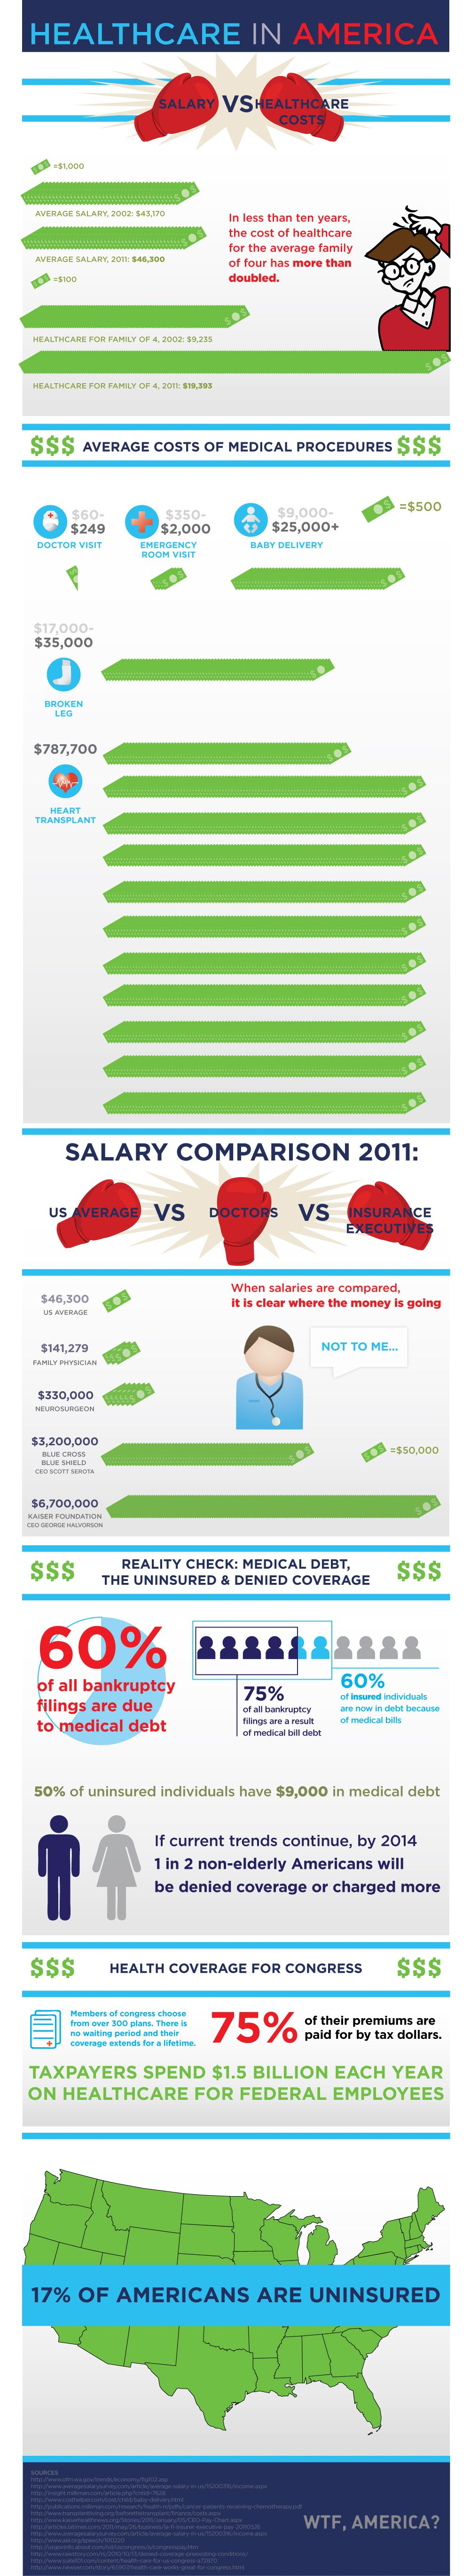 INFOGRAPHIC Healthcare in America From Physician